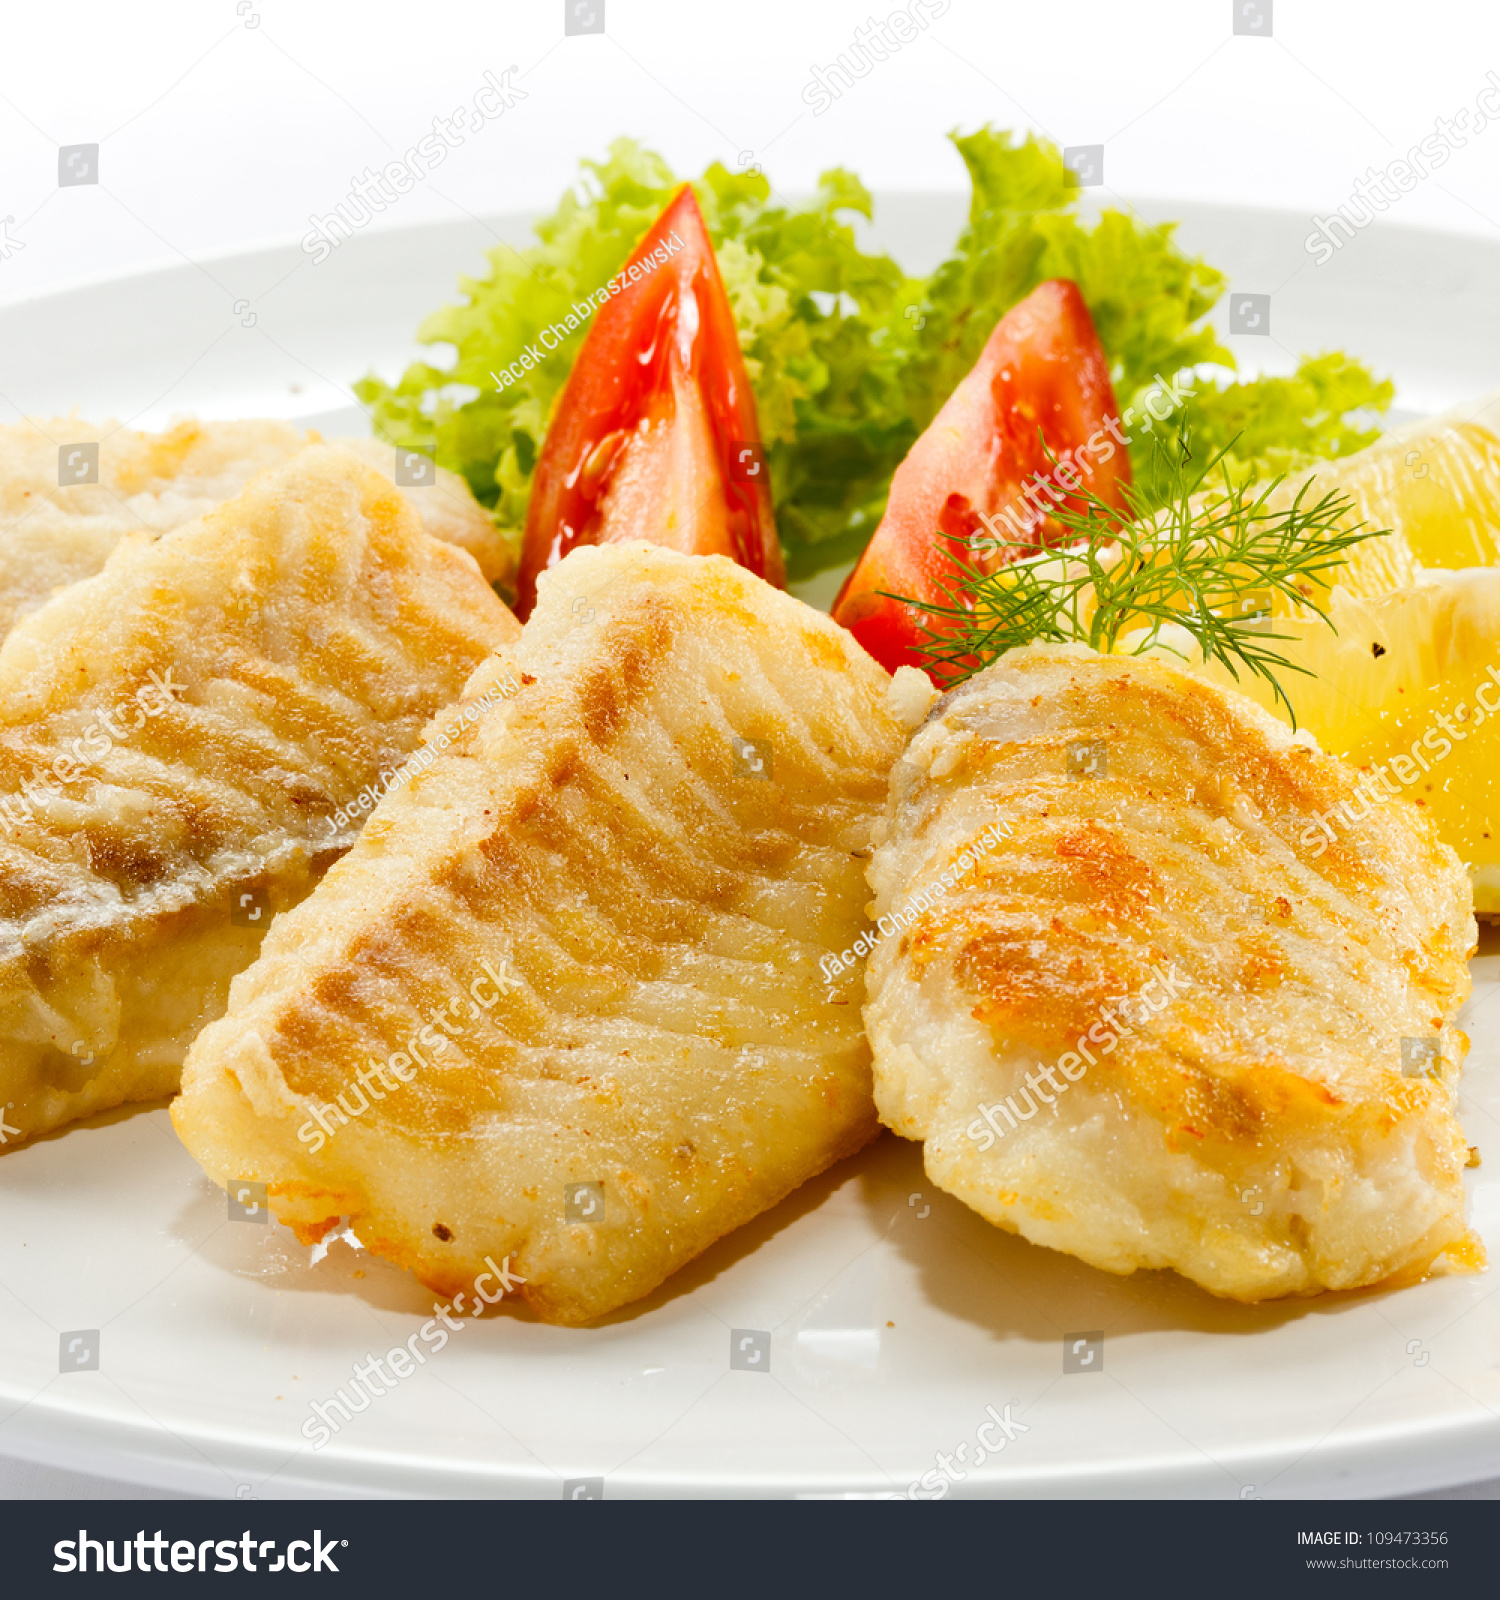 Fish dish fried fish fillet vegetables stock photo for Fried fish fillet recipes